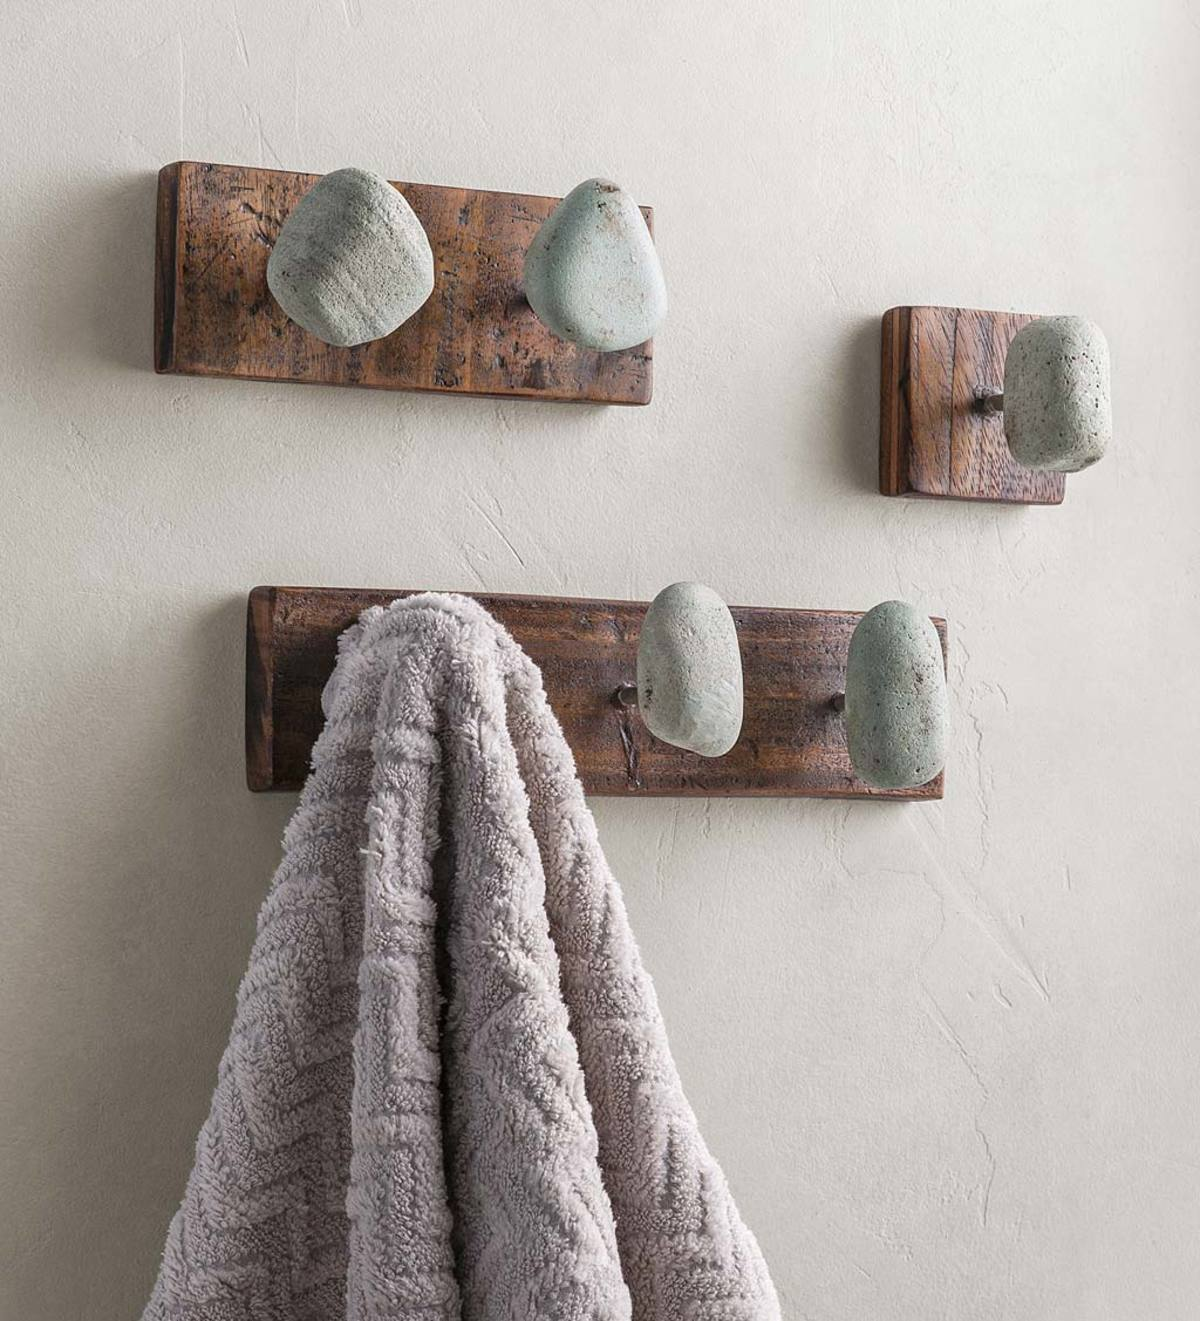 Natural Stone and Recycled Wood Hangers